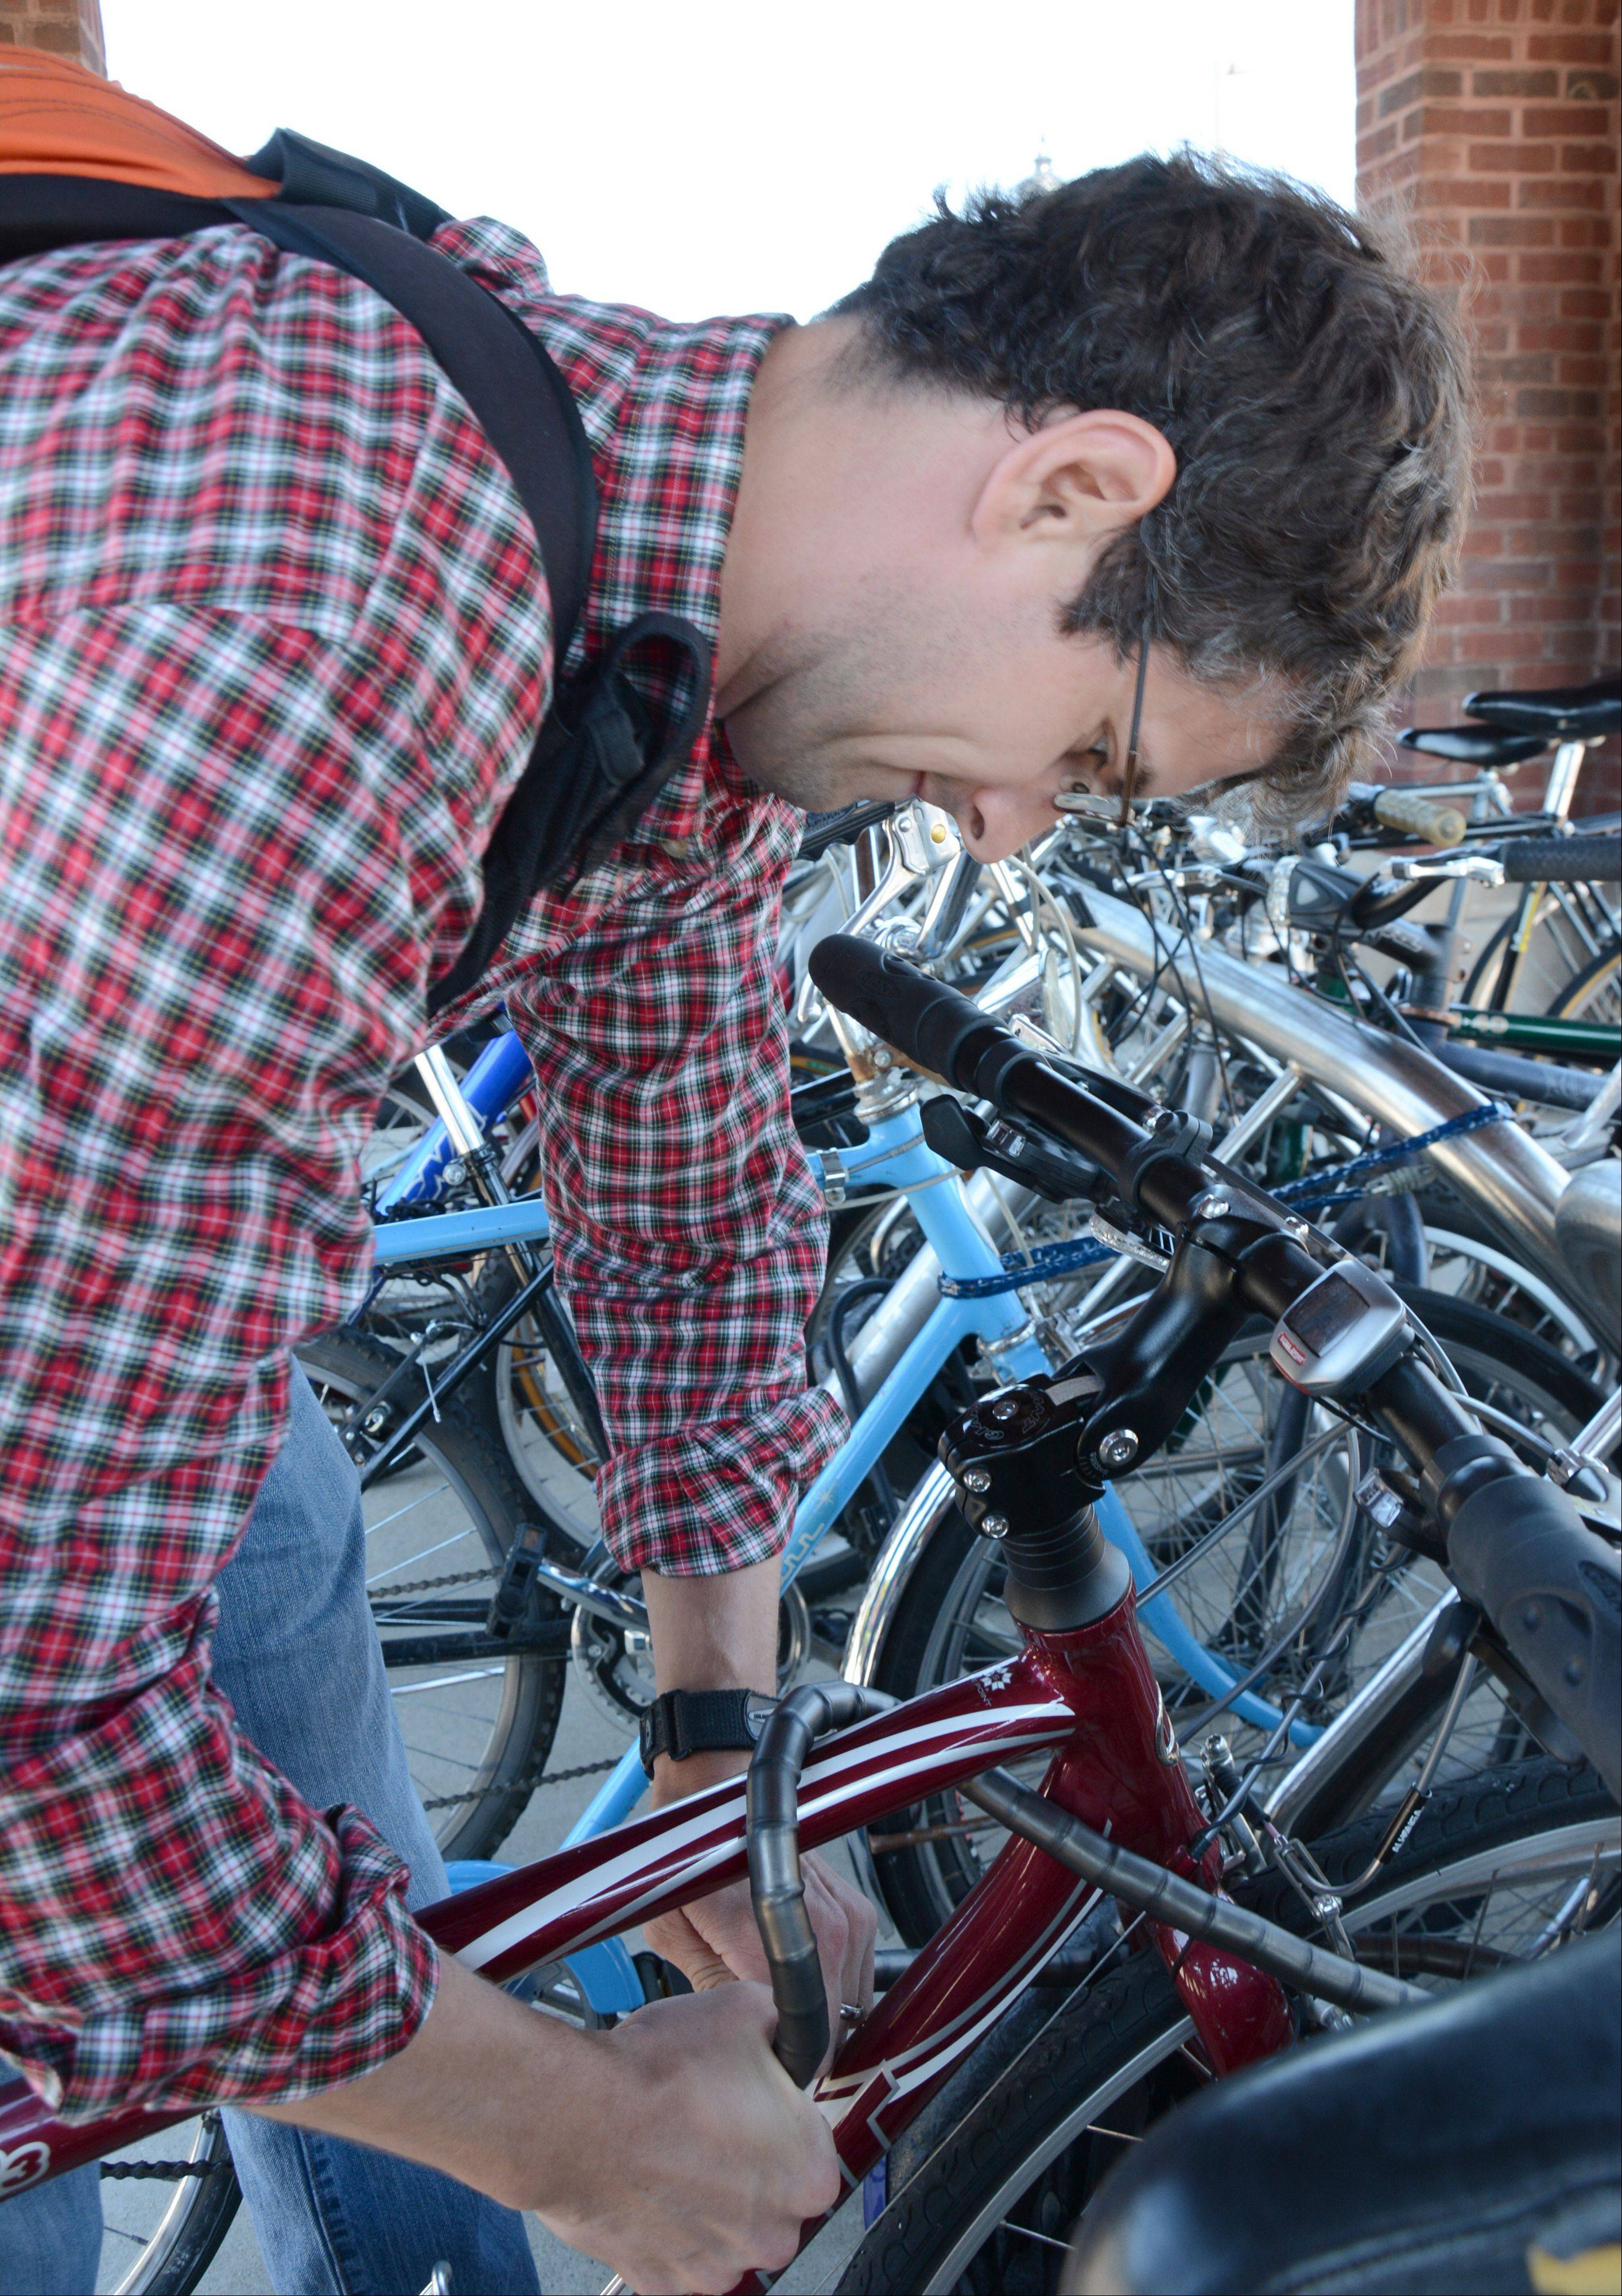 Mike Walsh, of Arlington Heights, locks up his bike at the Arlington Heights train station. Walsh had a bike stolen years ago, but hopes his bike lock is enough of a deterrent to prevent it from happening again.